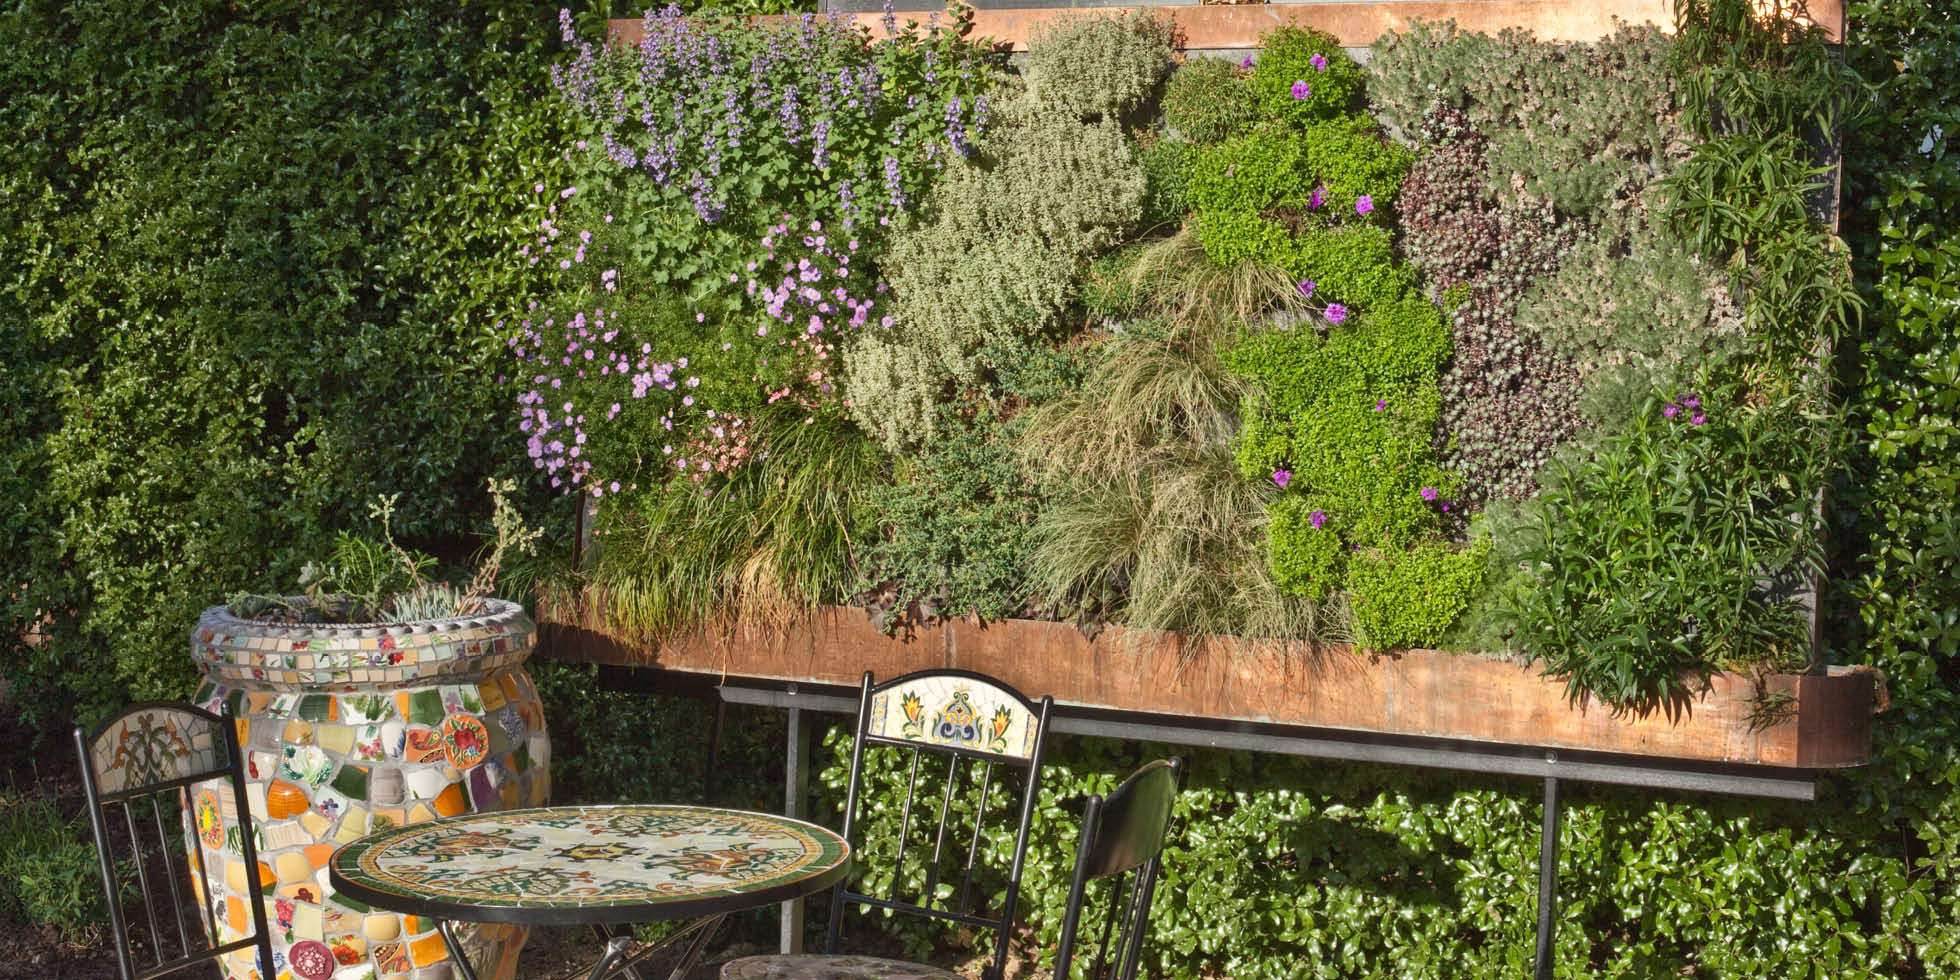 Saratoga Garden Living Wall by Habitat Horticulture - View 1